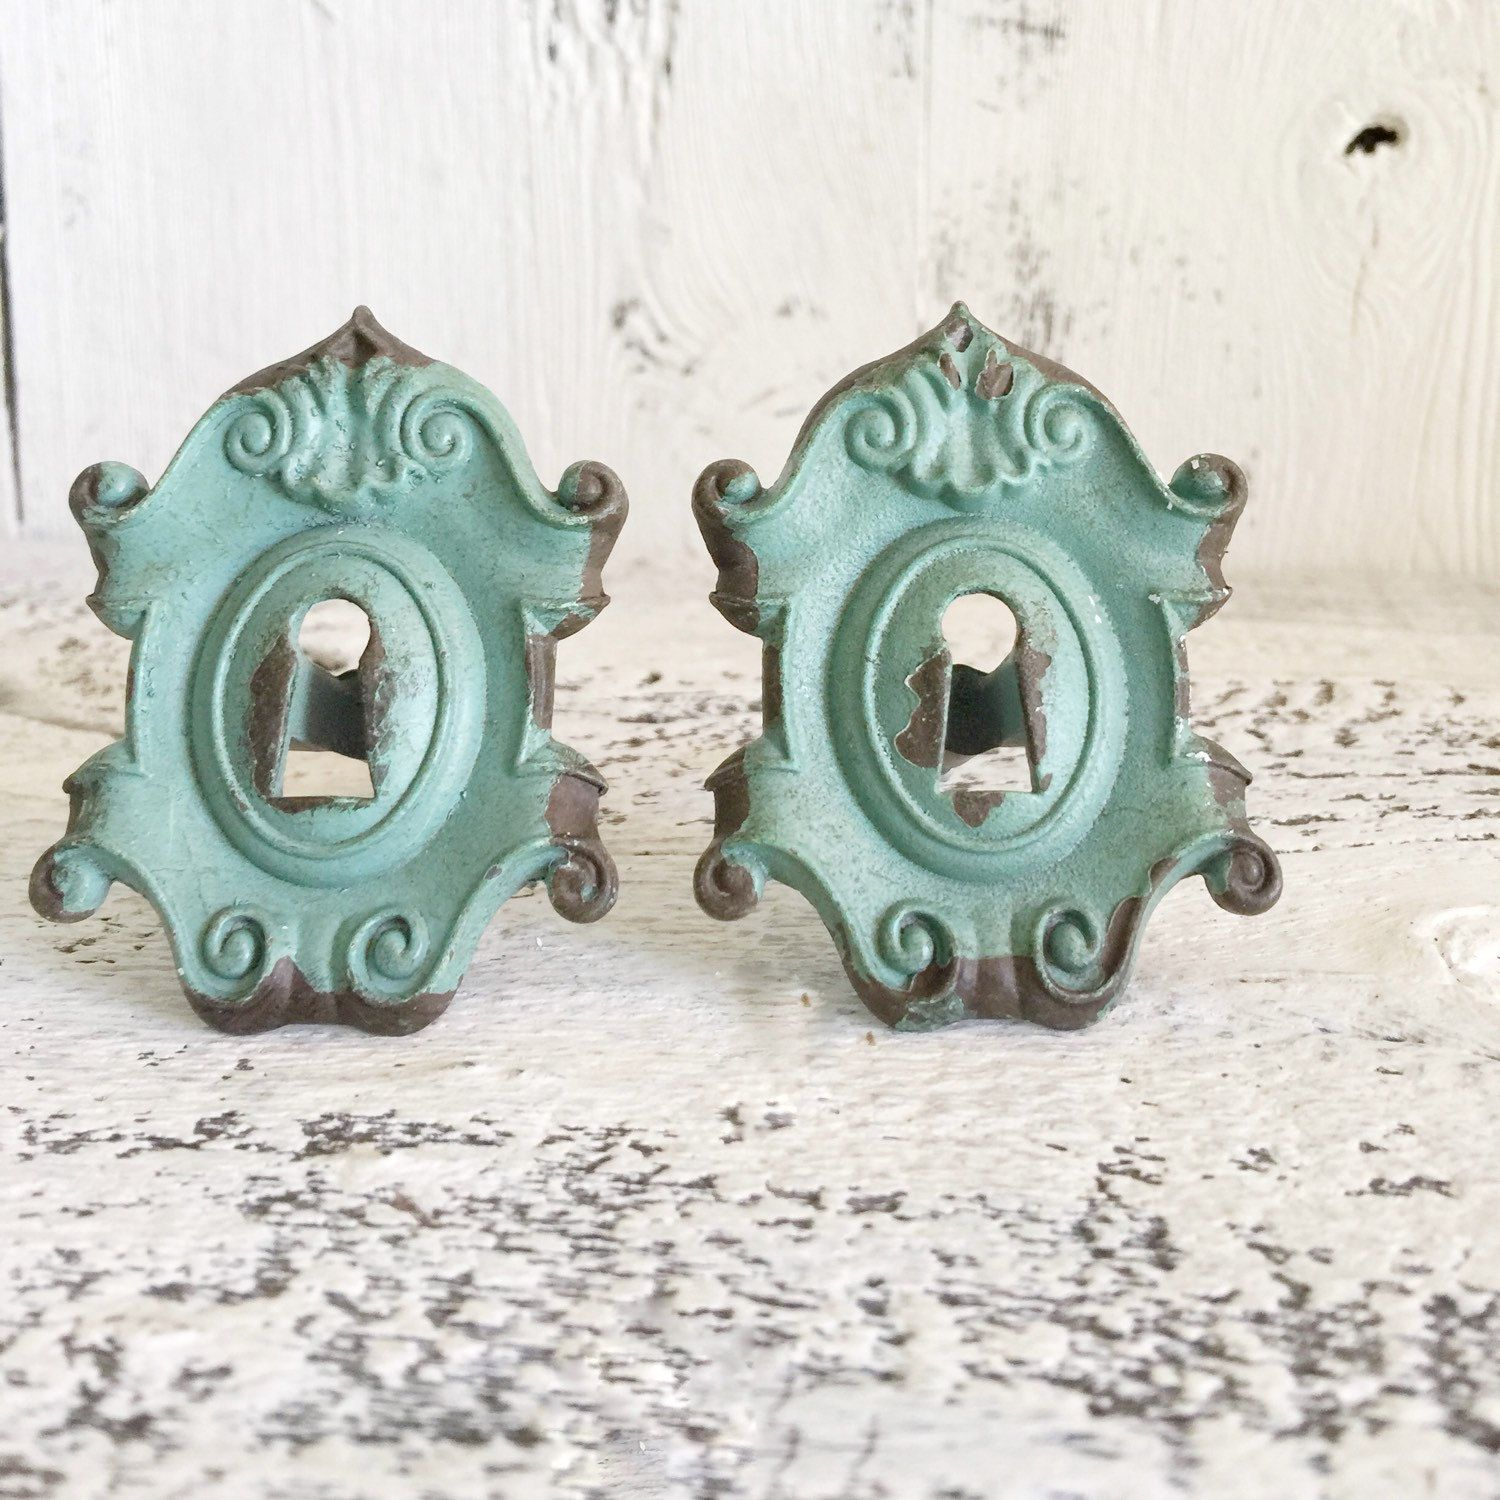 Antique Key Hole Knobs , Vintage Style Kitchen Cabinet Knobs ...